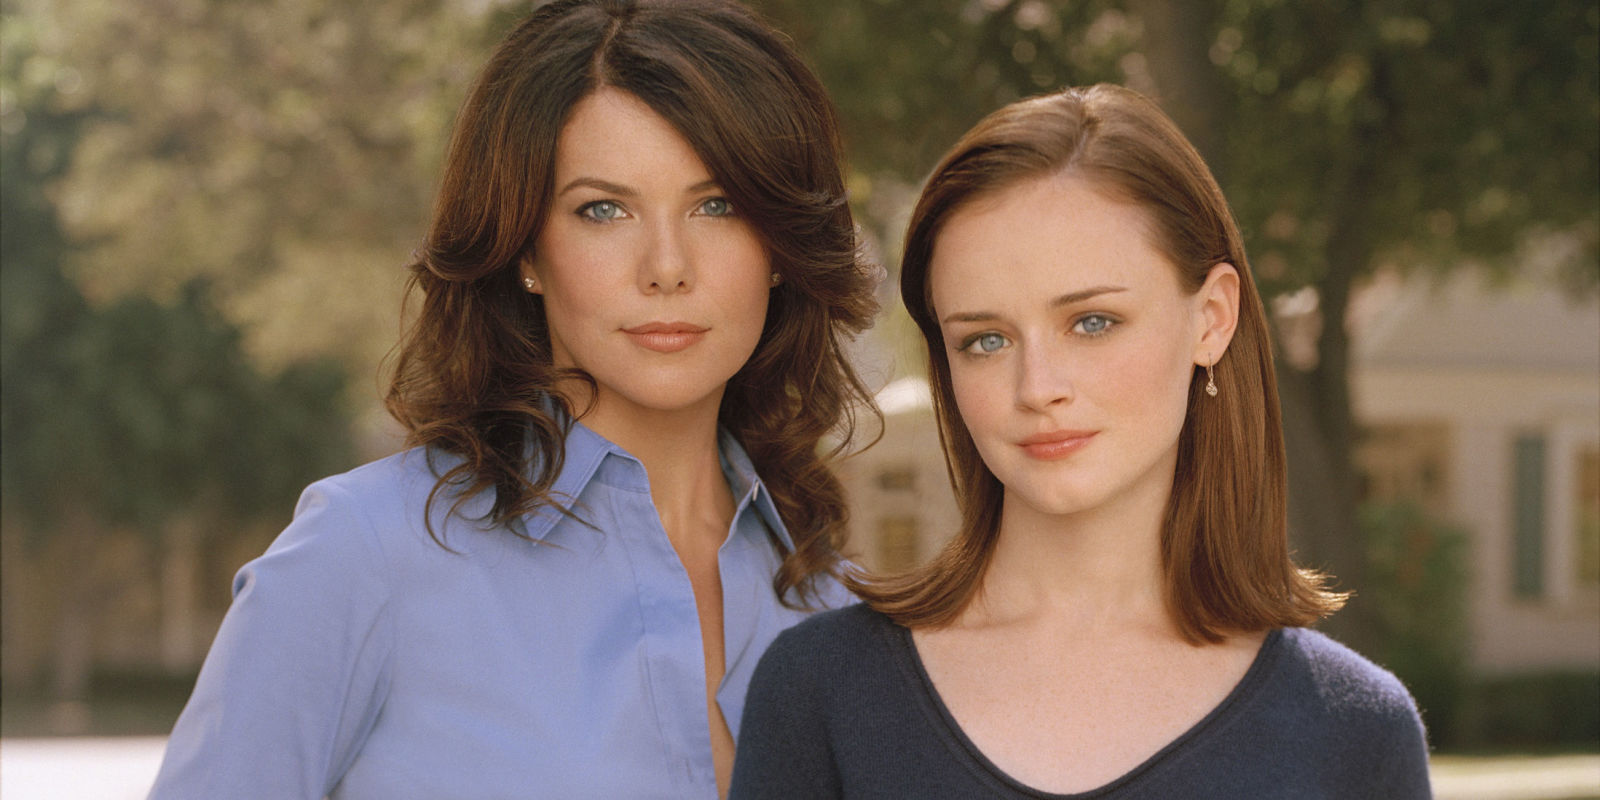 Lauren Graham and Alexis Bledel, who star as Lorelei Gilmore and Rory Gilmore, respectively.